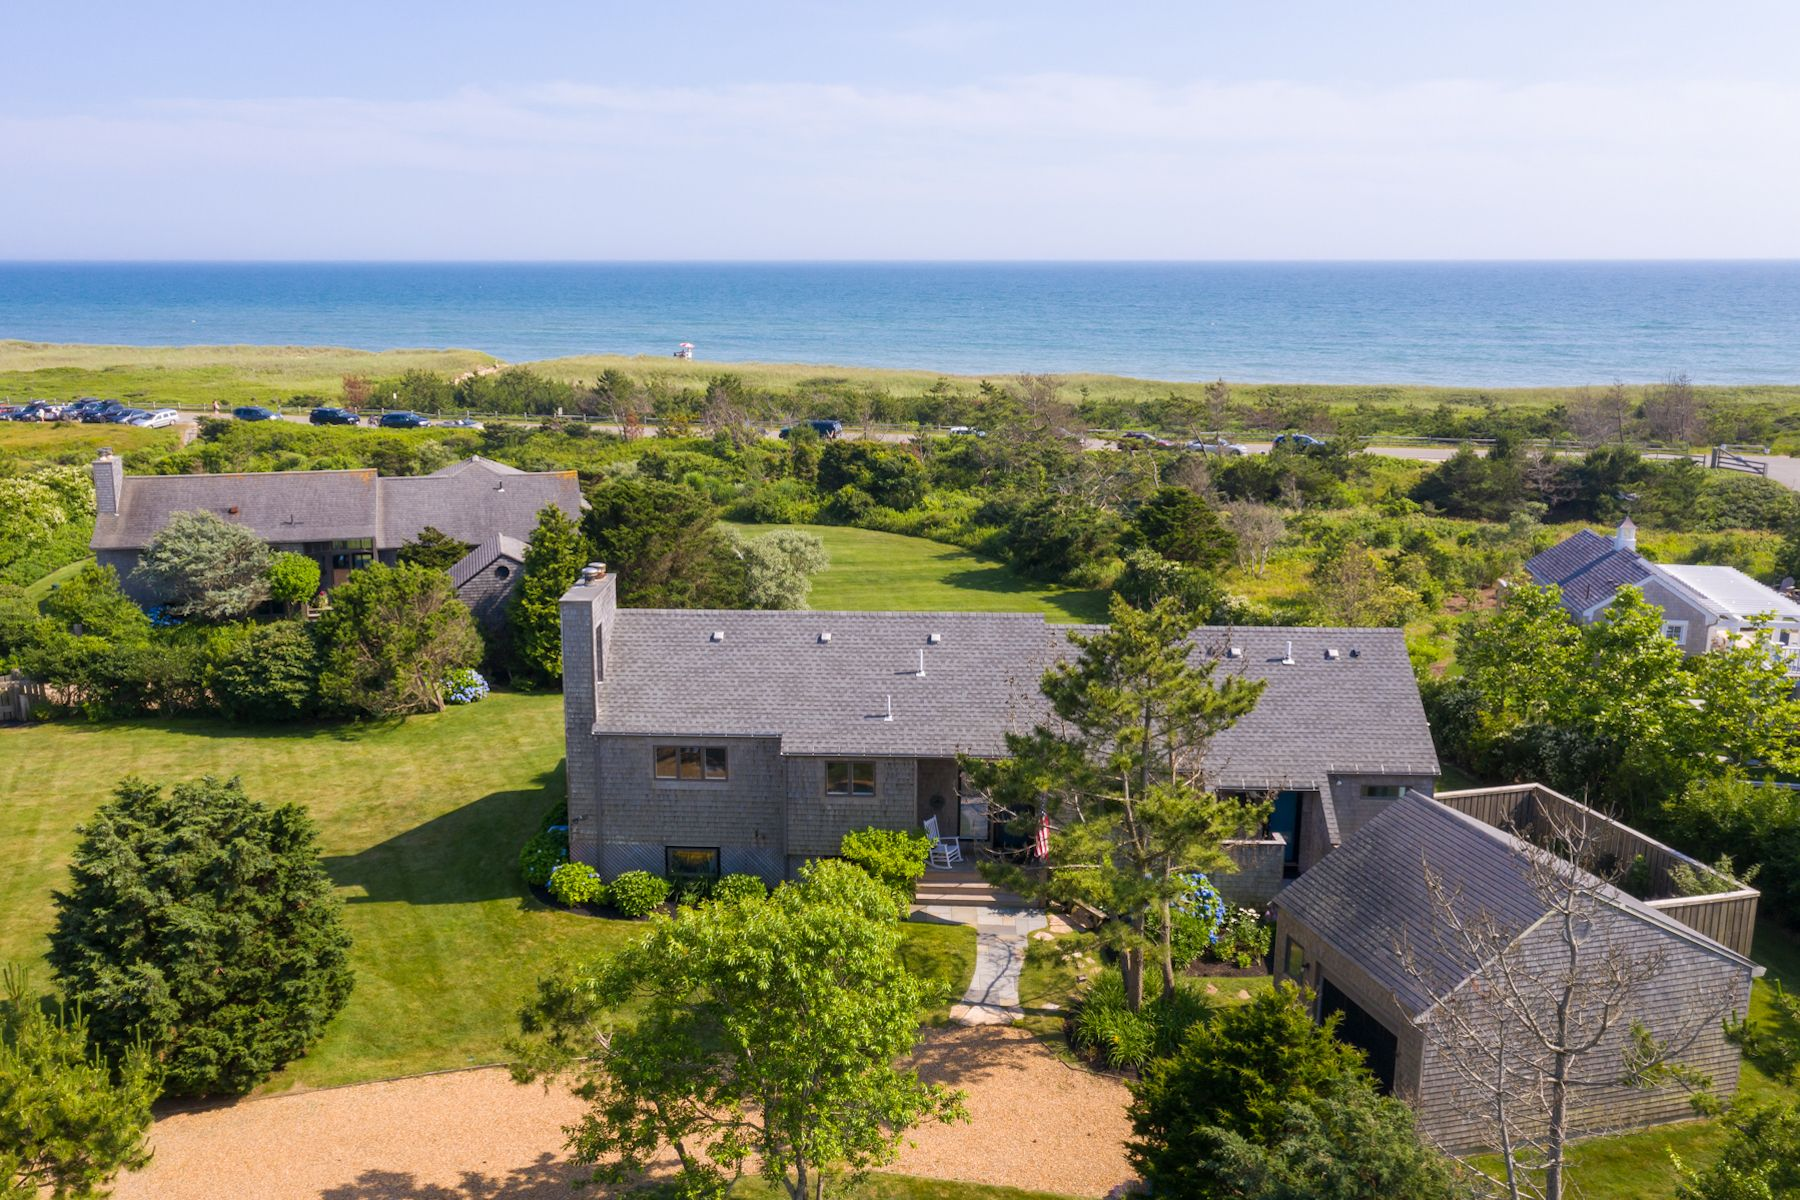 102 Mattakesett Way Edgartown